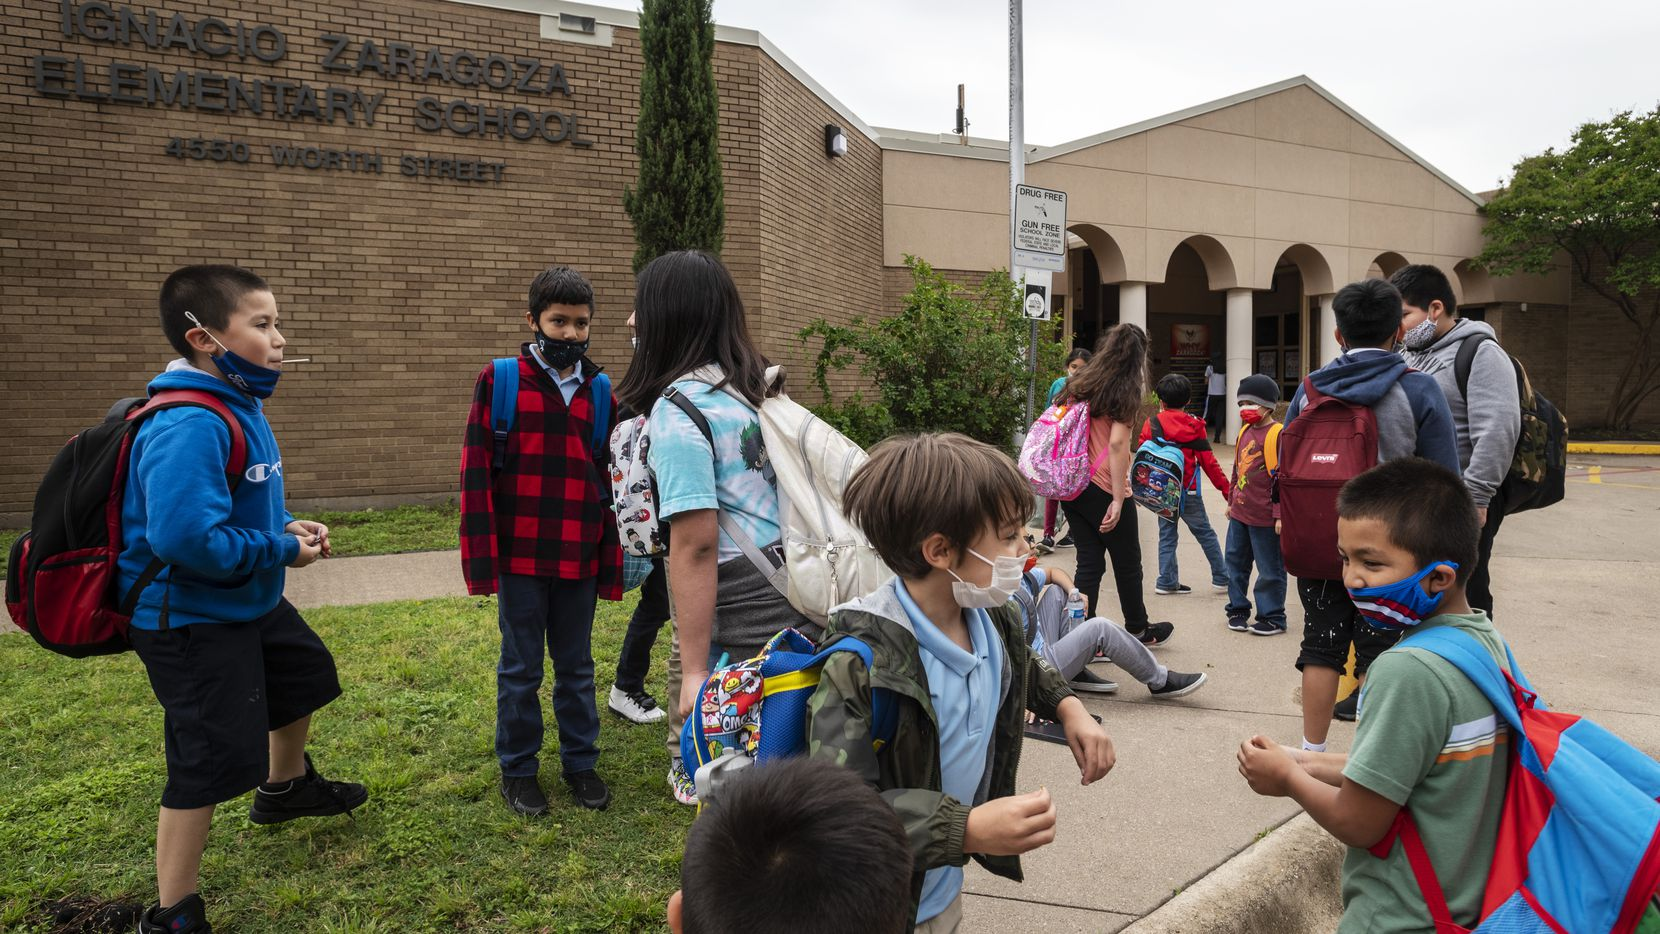 A group of students wearing face masks play outside of Ignacio Zaragoza Elementary School as they wait to be picked-up from school, on Tuesday, May 18, 2021 in Dallas. Governor Abbott issued an executive order prohibiting mask mandates by local governments including schools. The DISD mask requirement continues until June 4th.